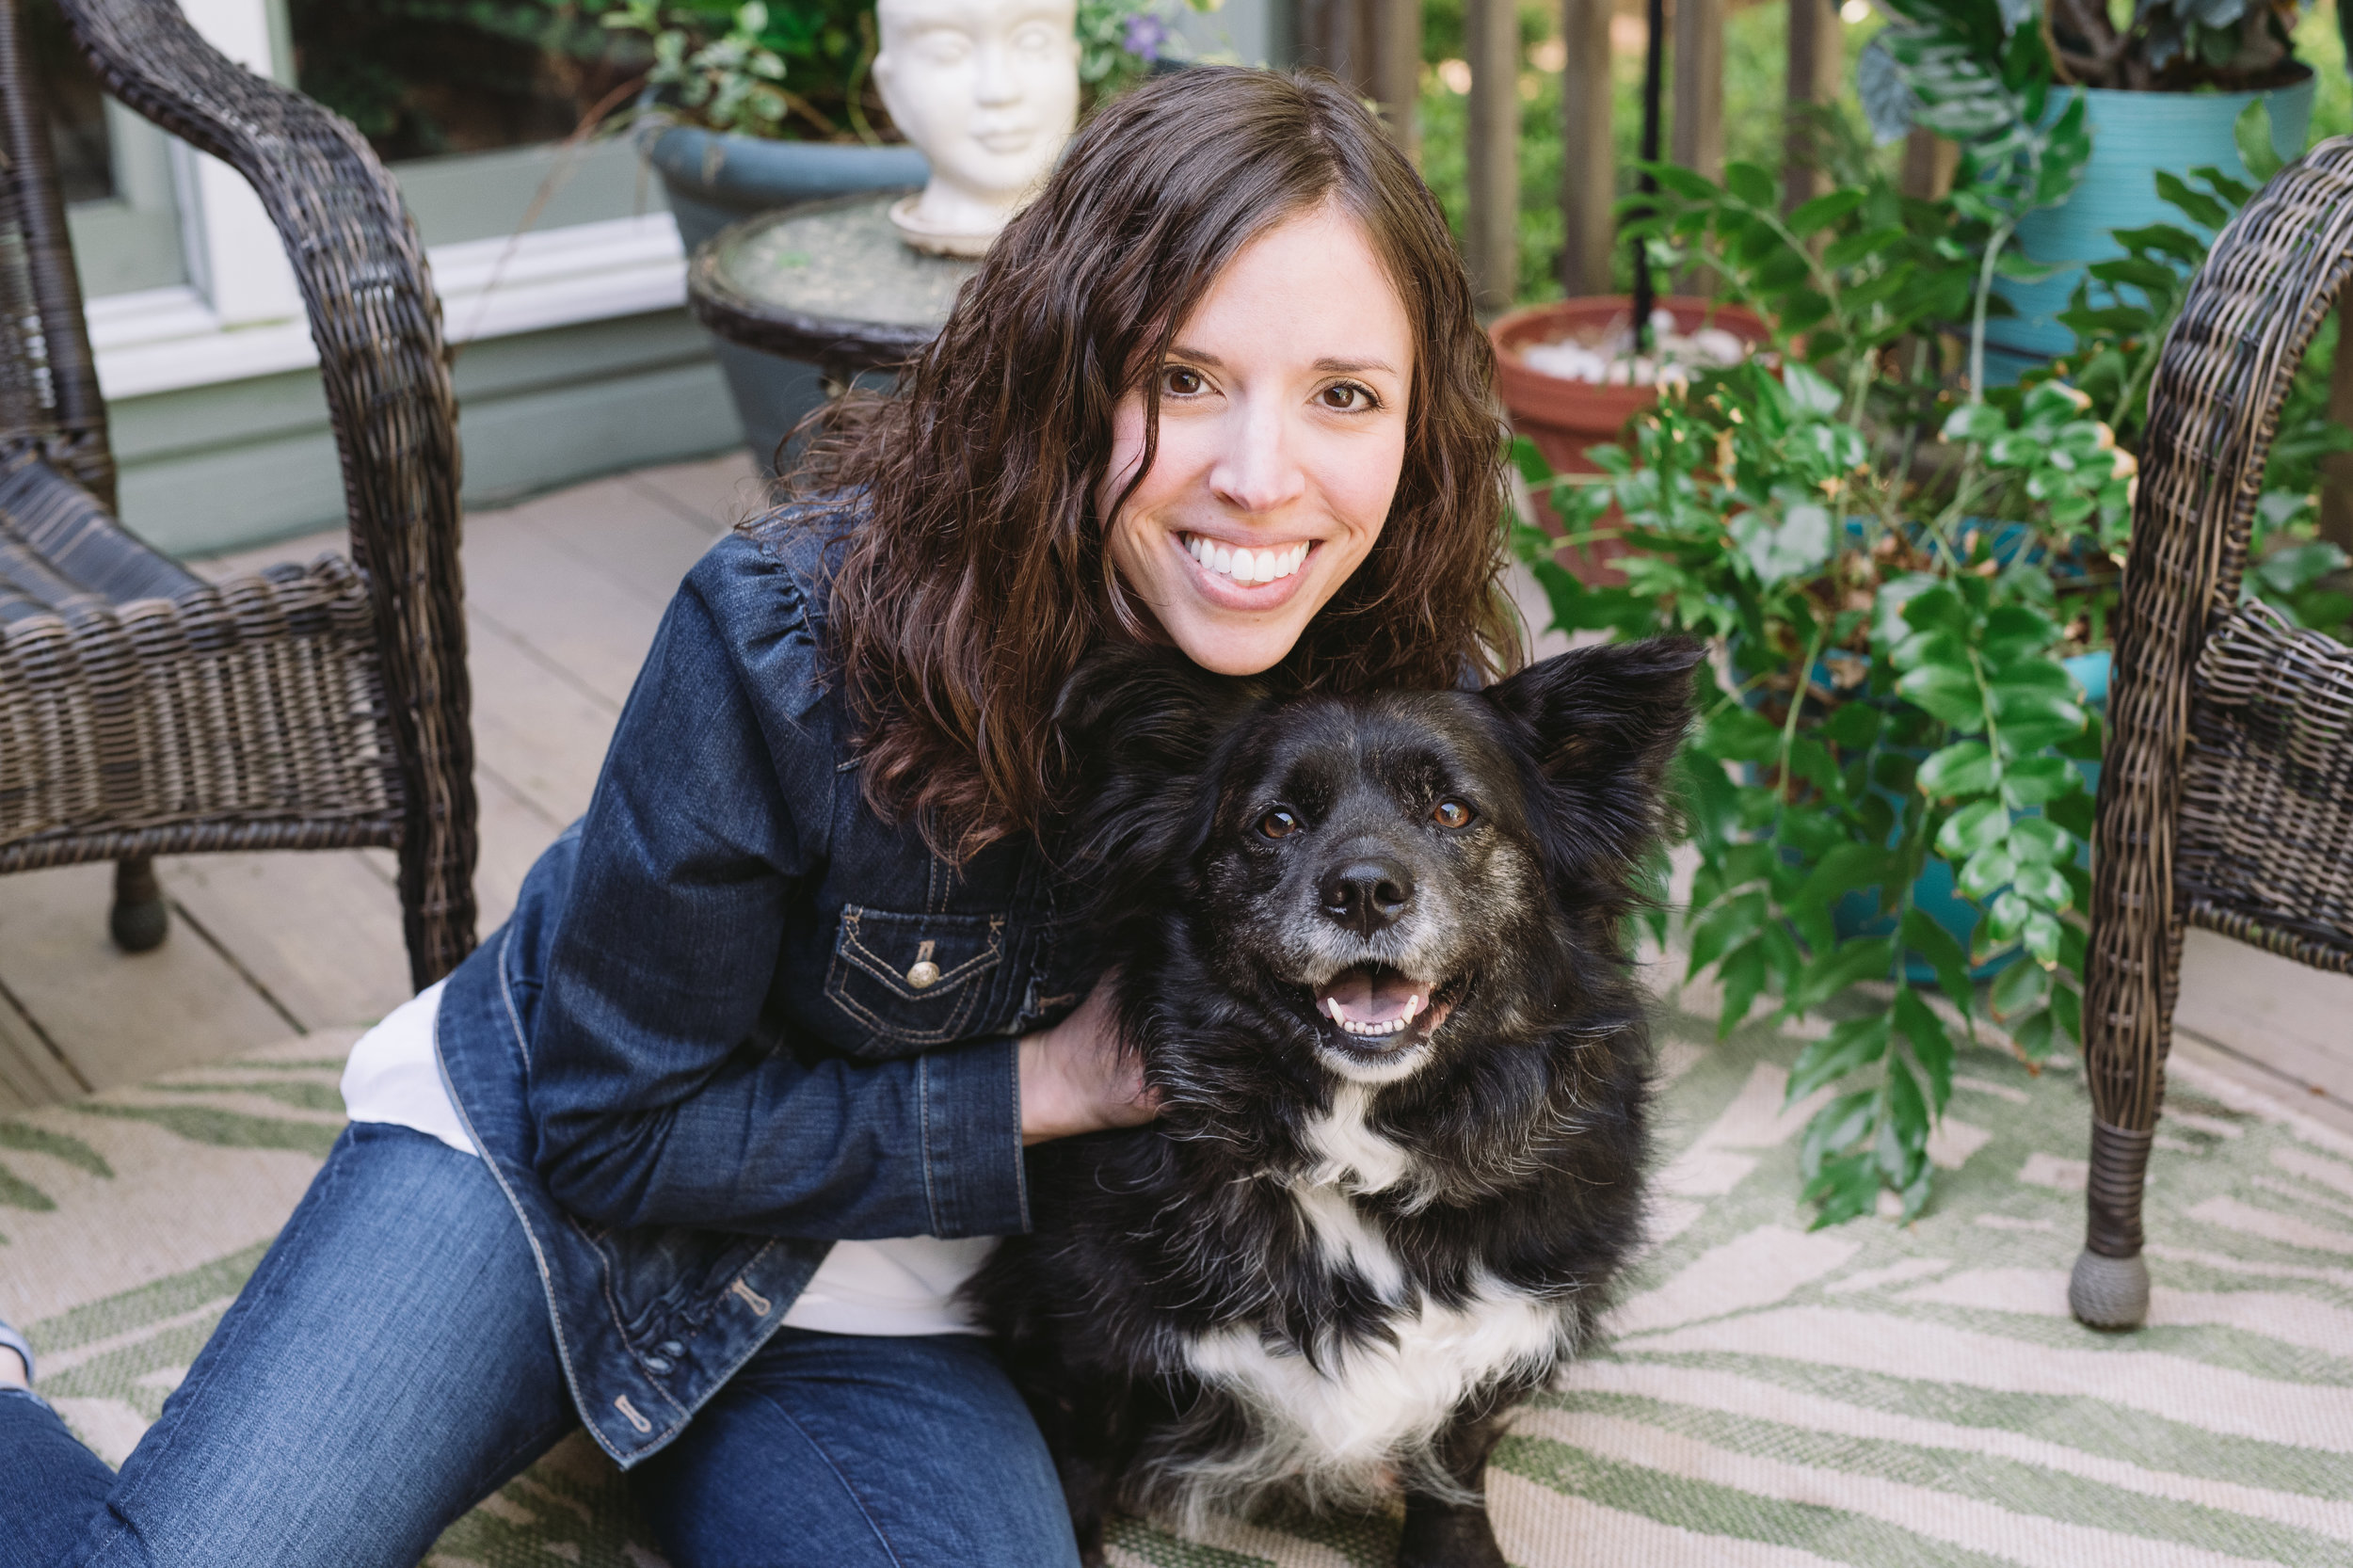 Meet the Trainer - I understand what it's like when your dog's behavior is making you crazy, I've been there. Now, I'm educated and experienced in changing behavior so you can have a happier life with your dog. Learn More